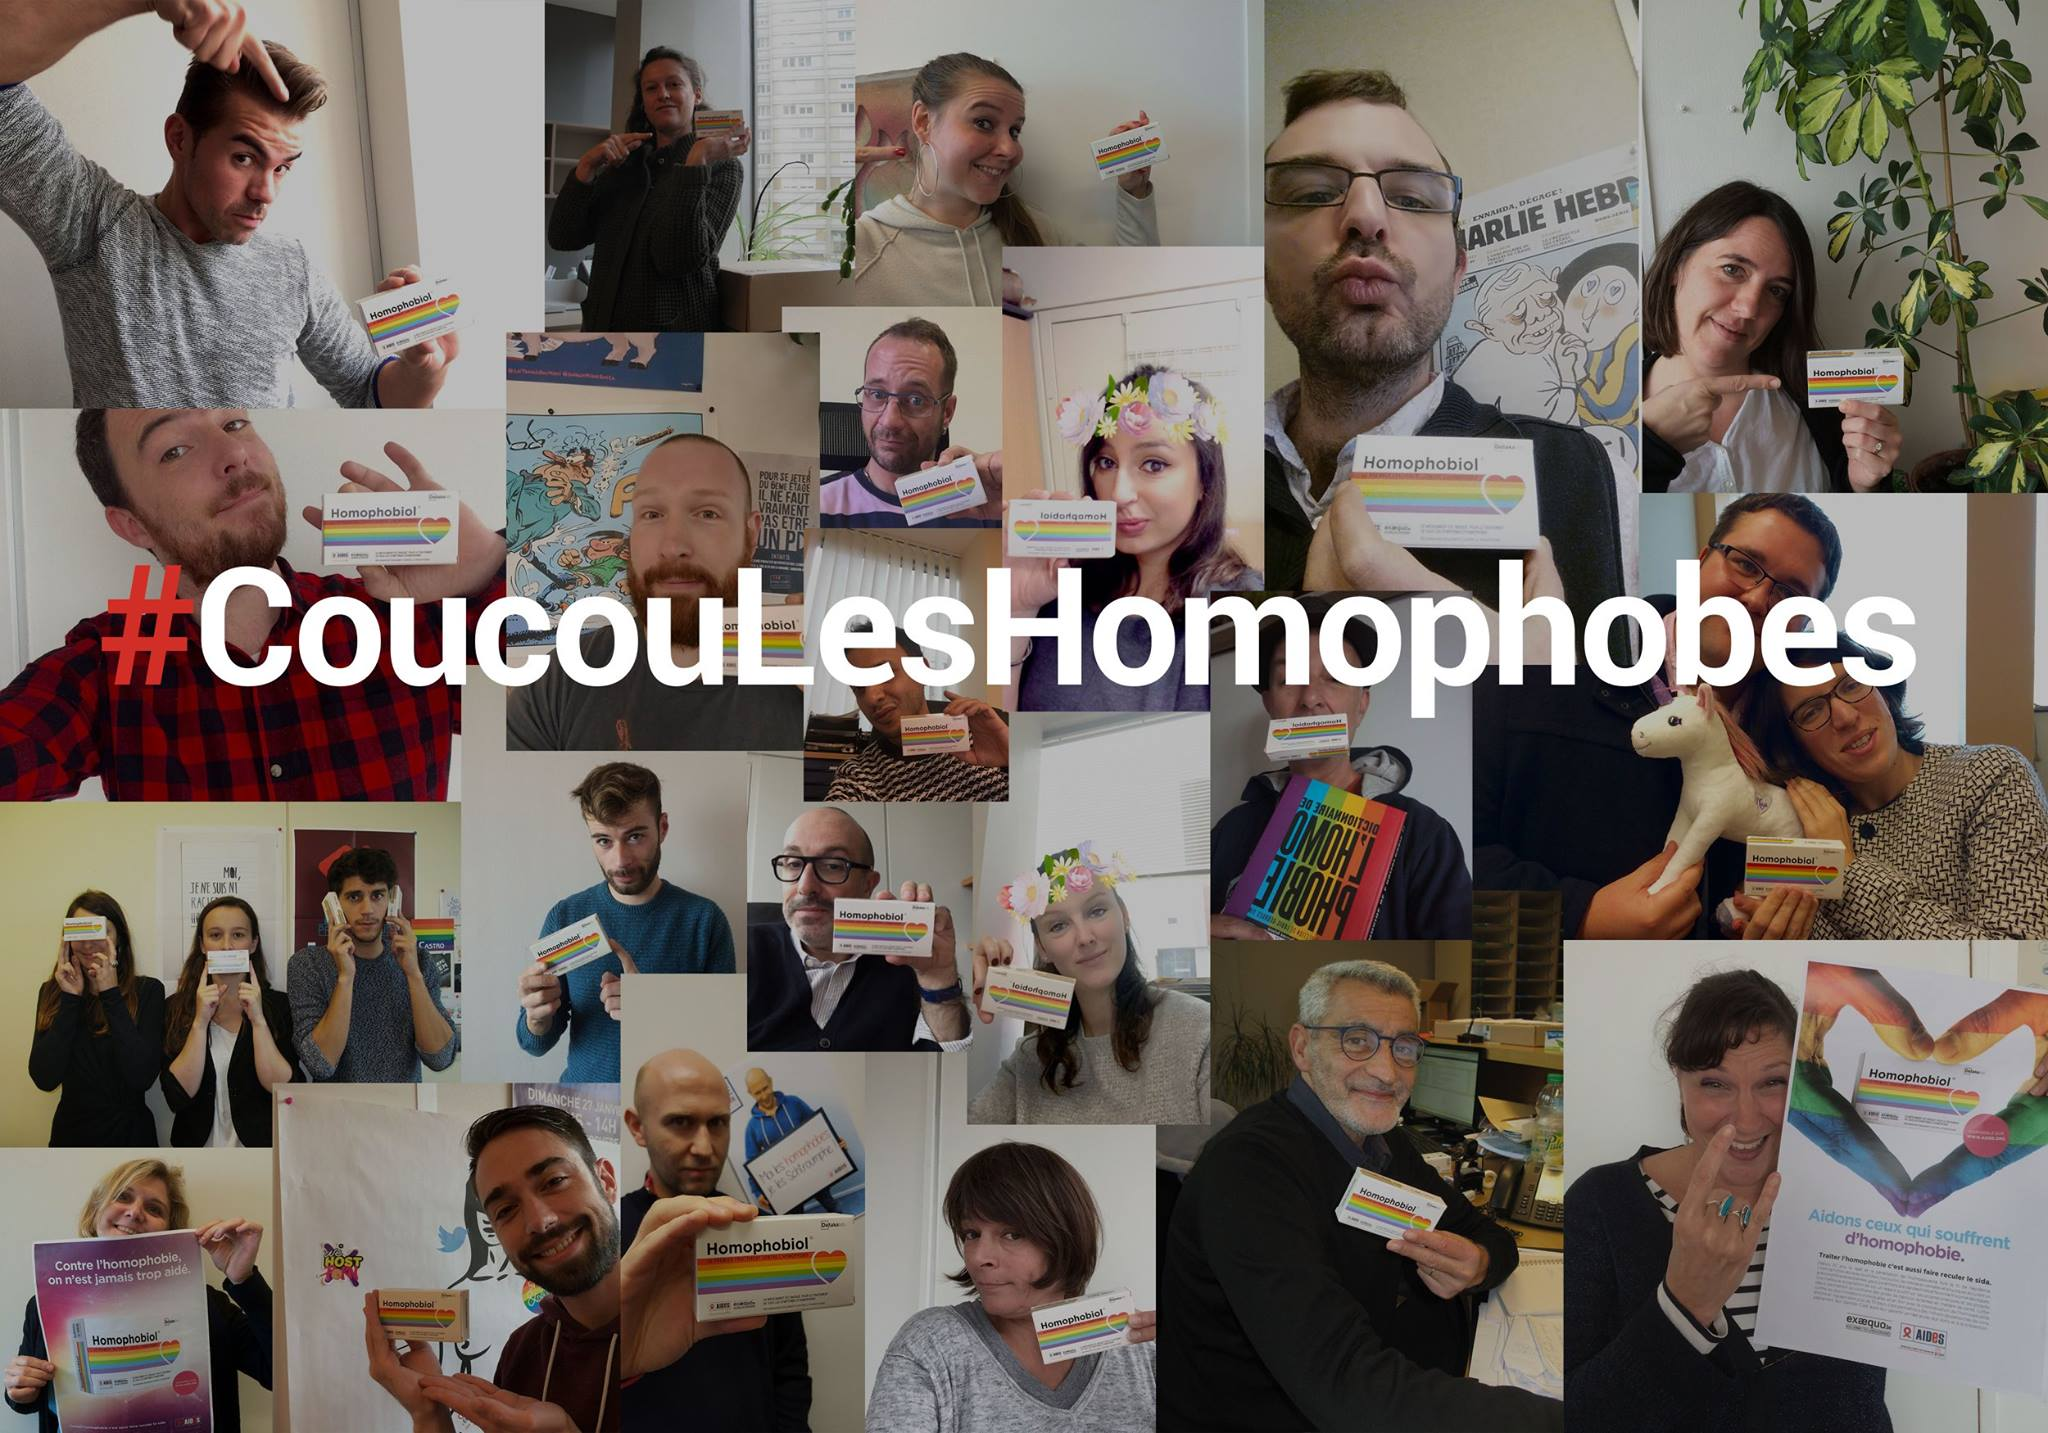 Coucou les homophobes !